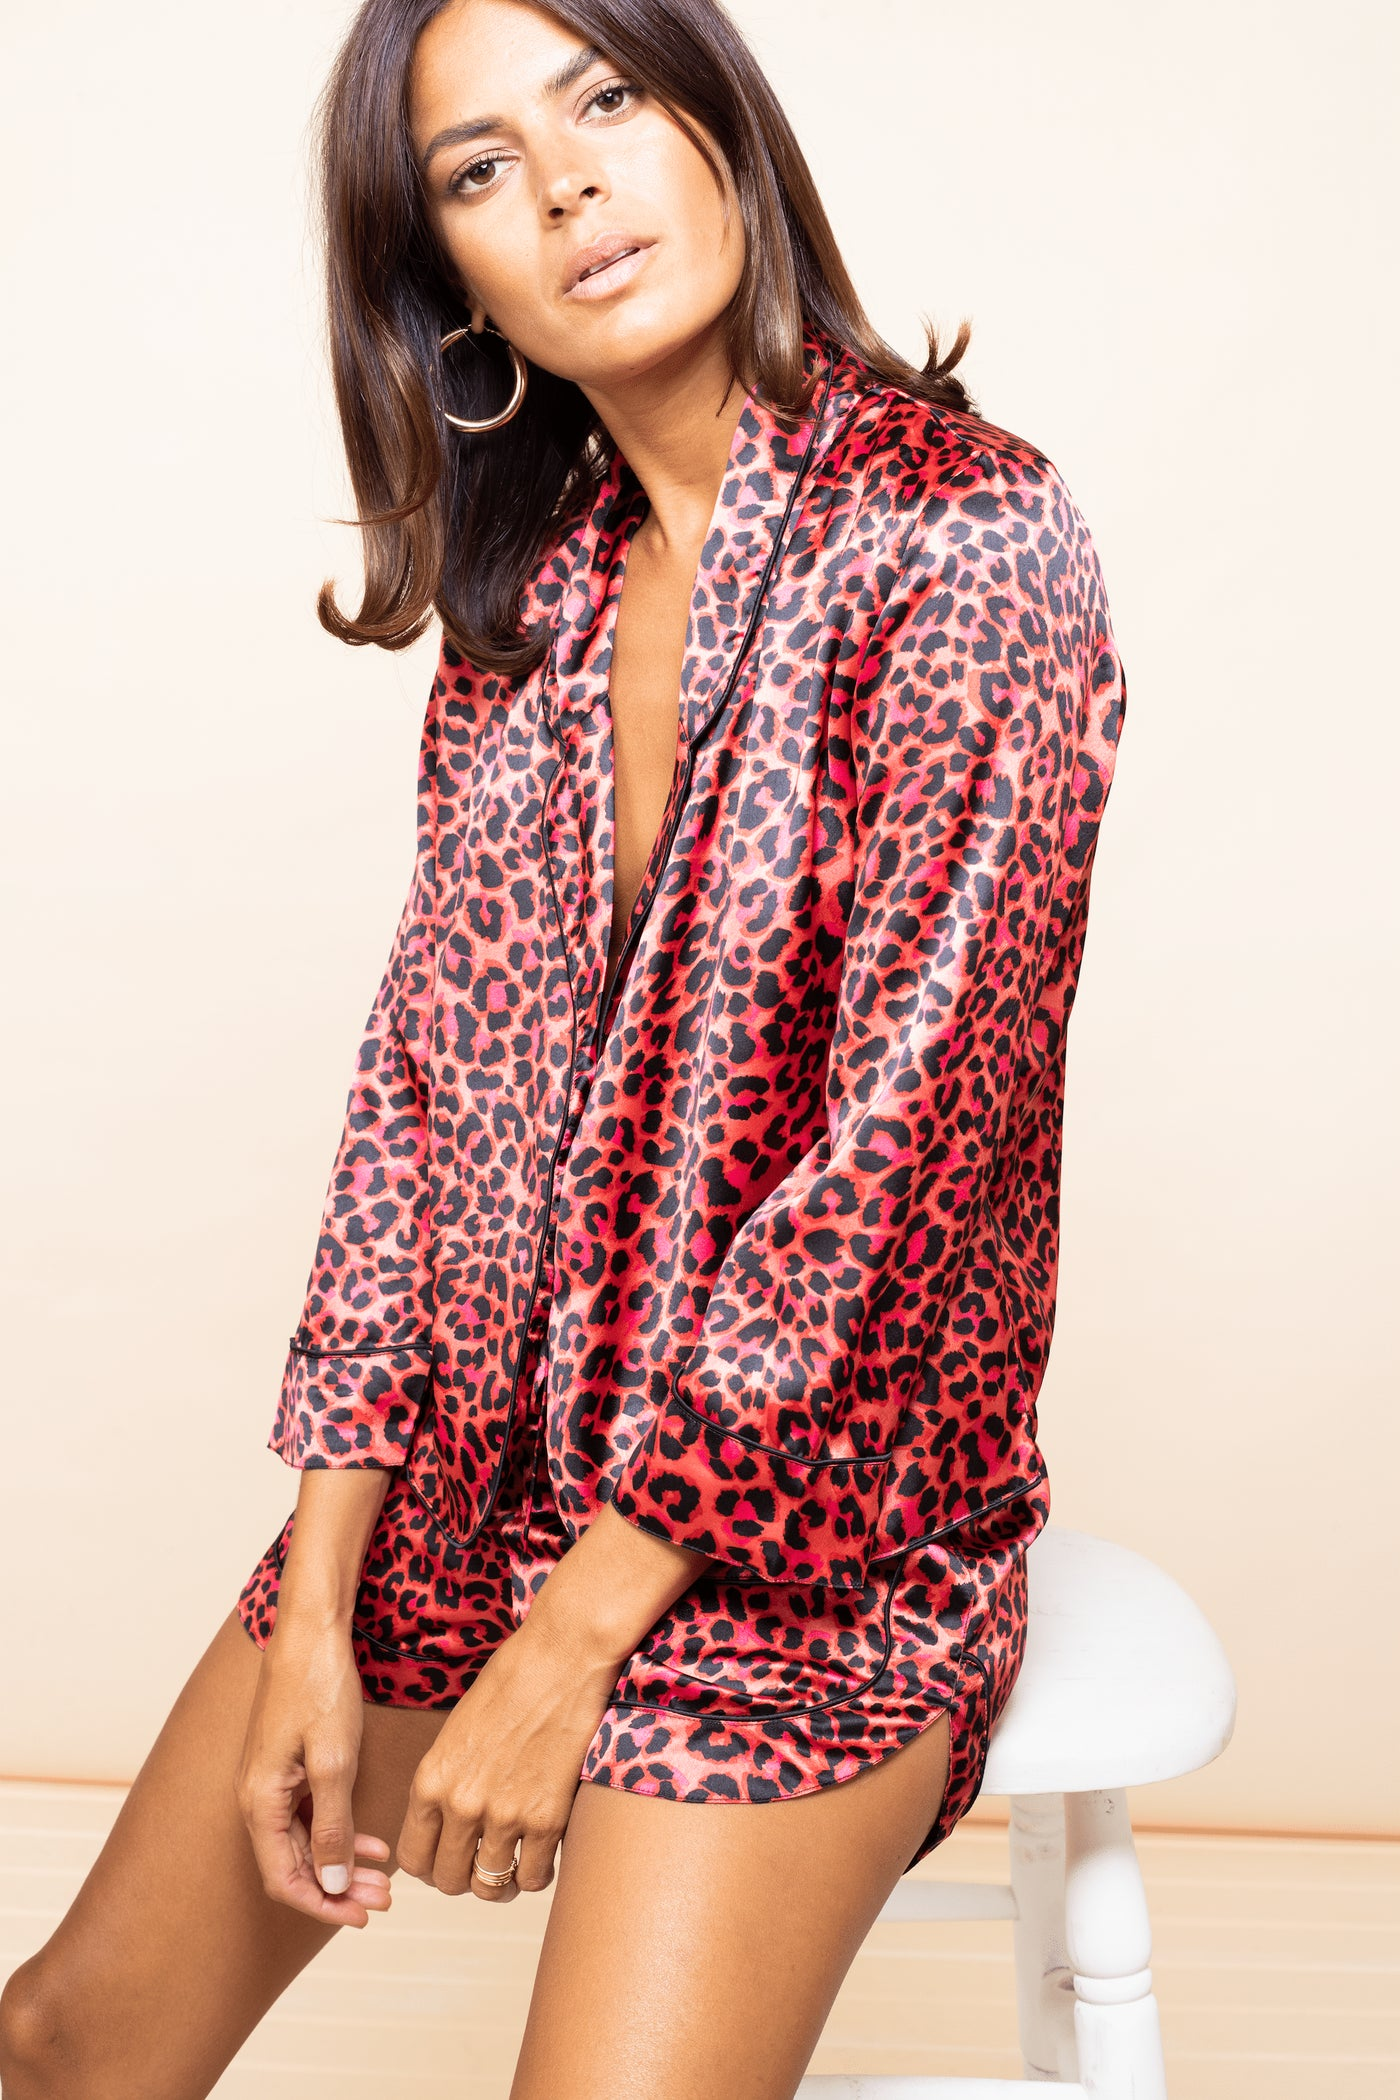 Dancing Leopard model sits on stool wearing Oona PJ Set in Red Leopard print